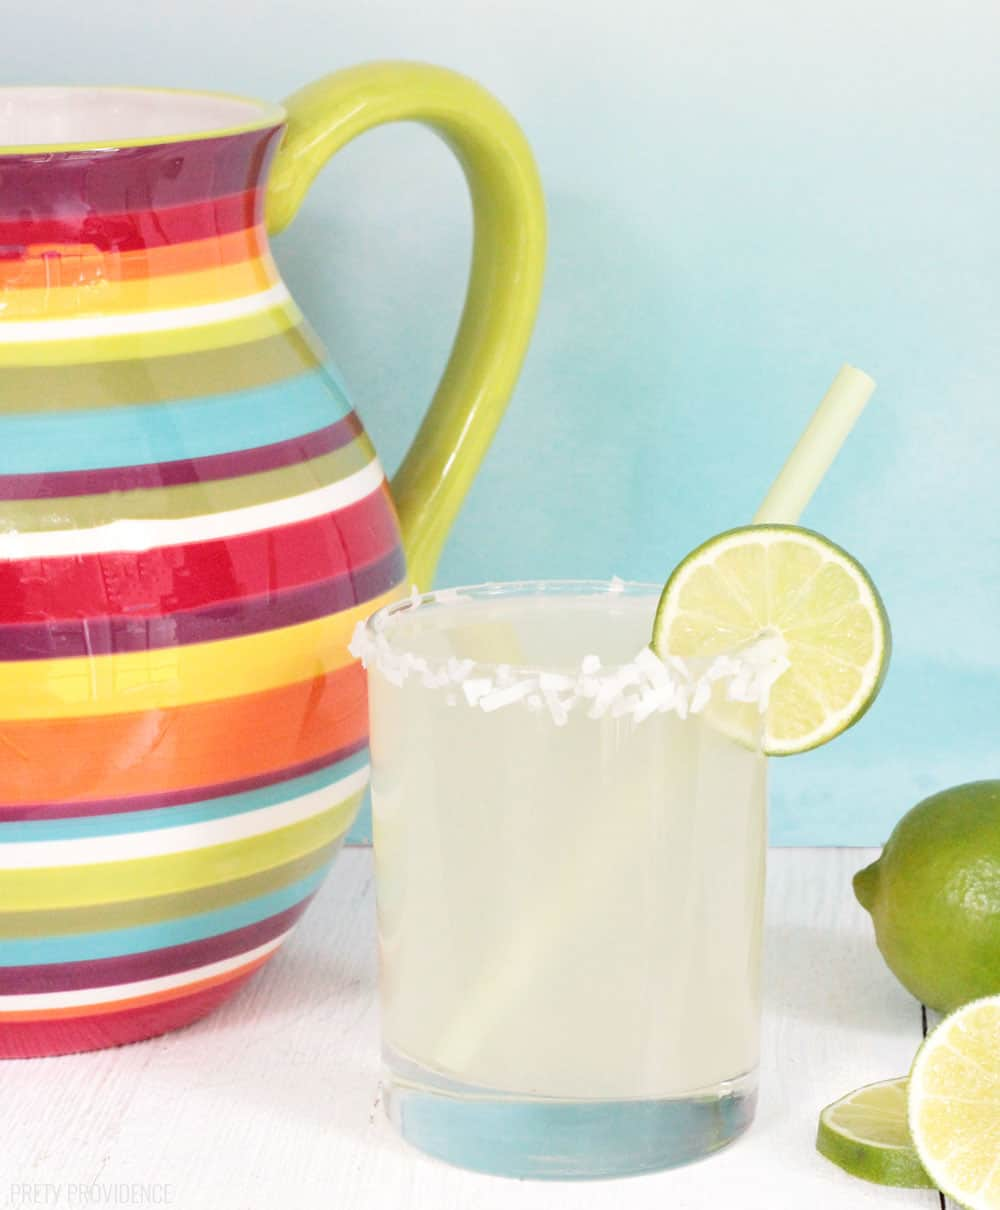 Limeade in a glass with coconut shavings on the rim. A colorful pitcher is in the background.